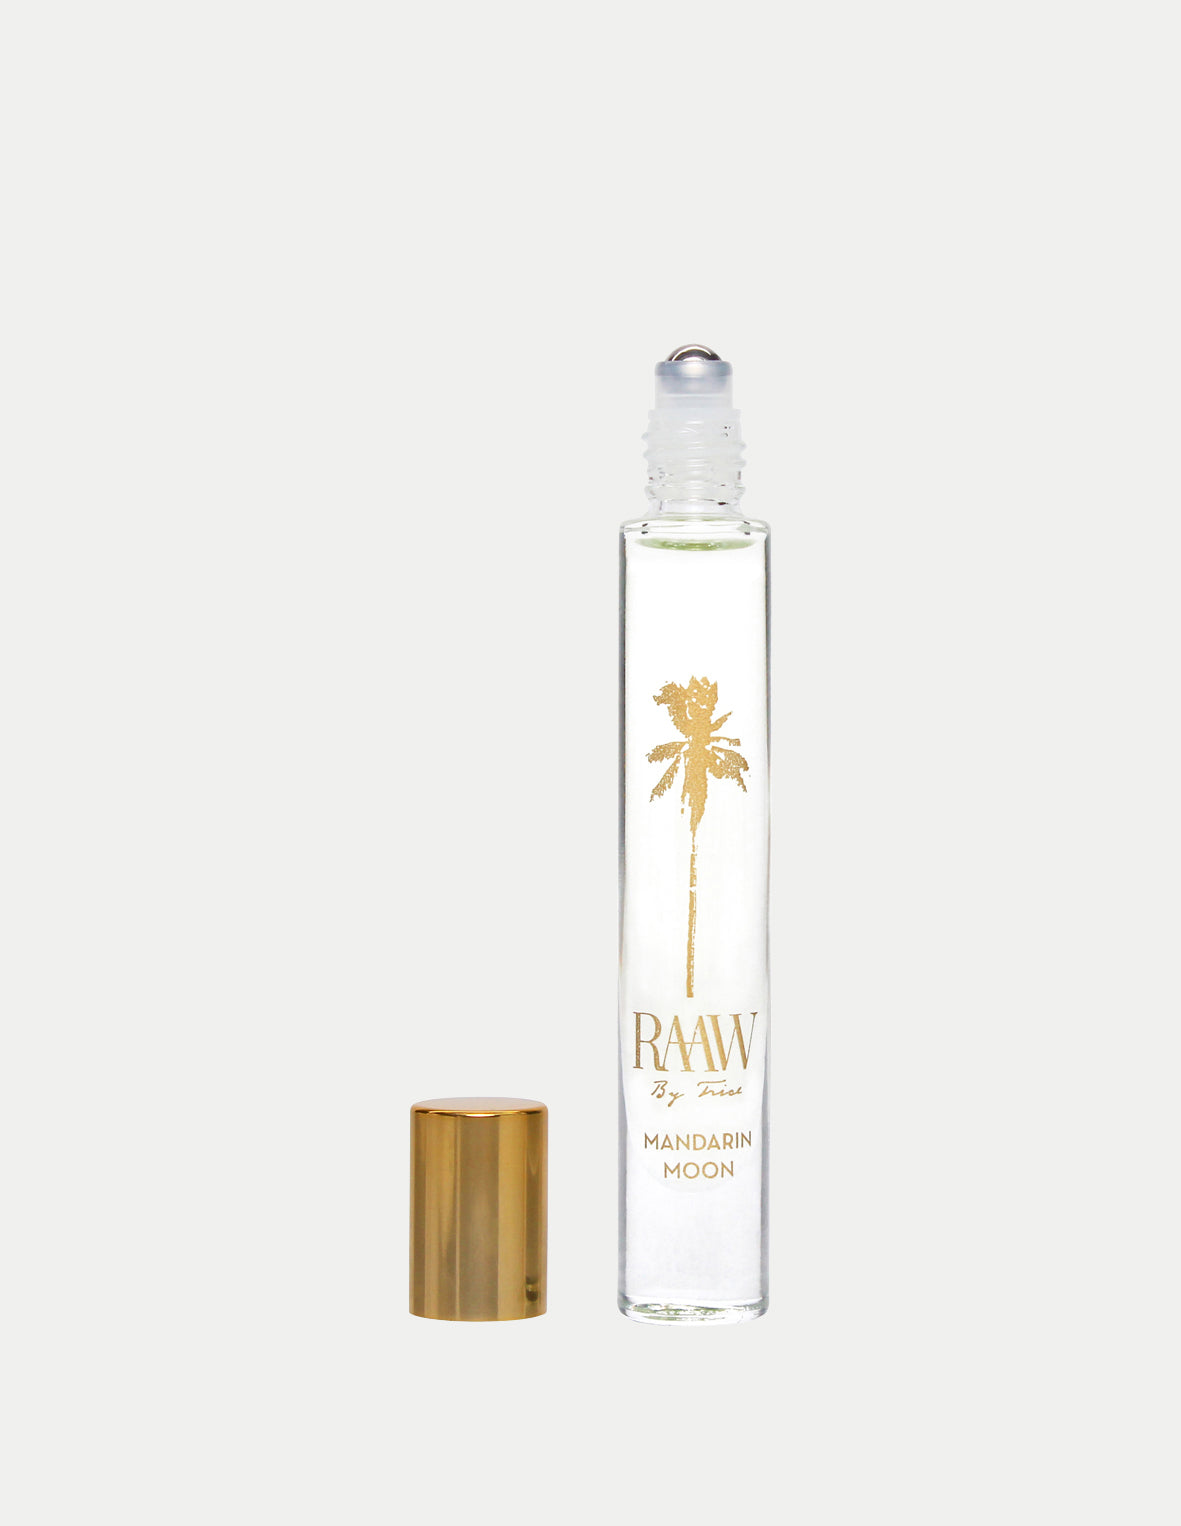 Raaw by Trice Mandarin Moon Perfume Oil